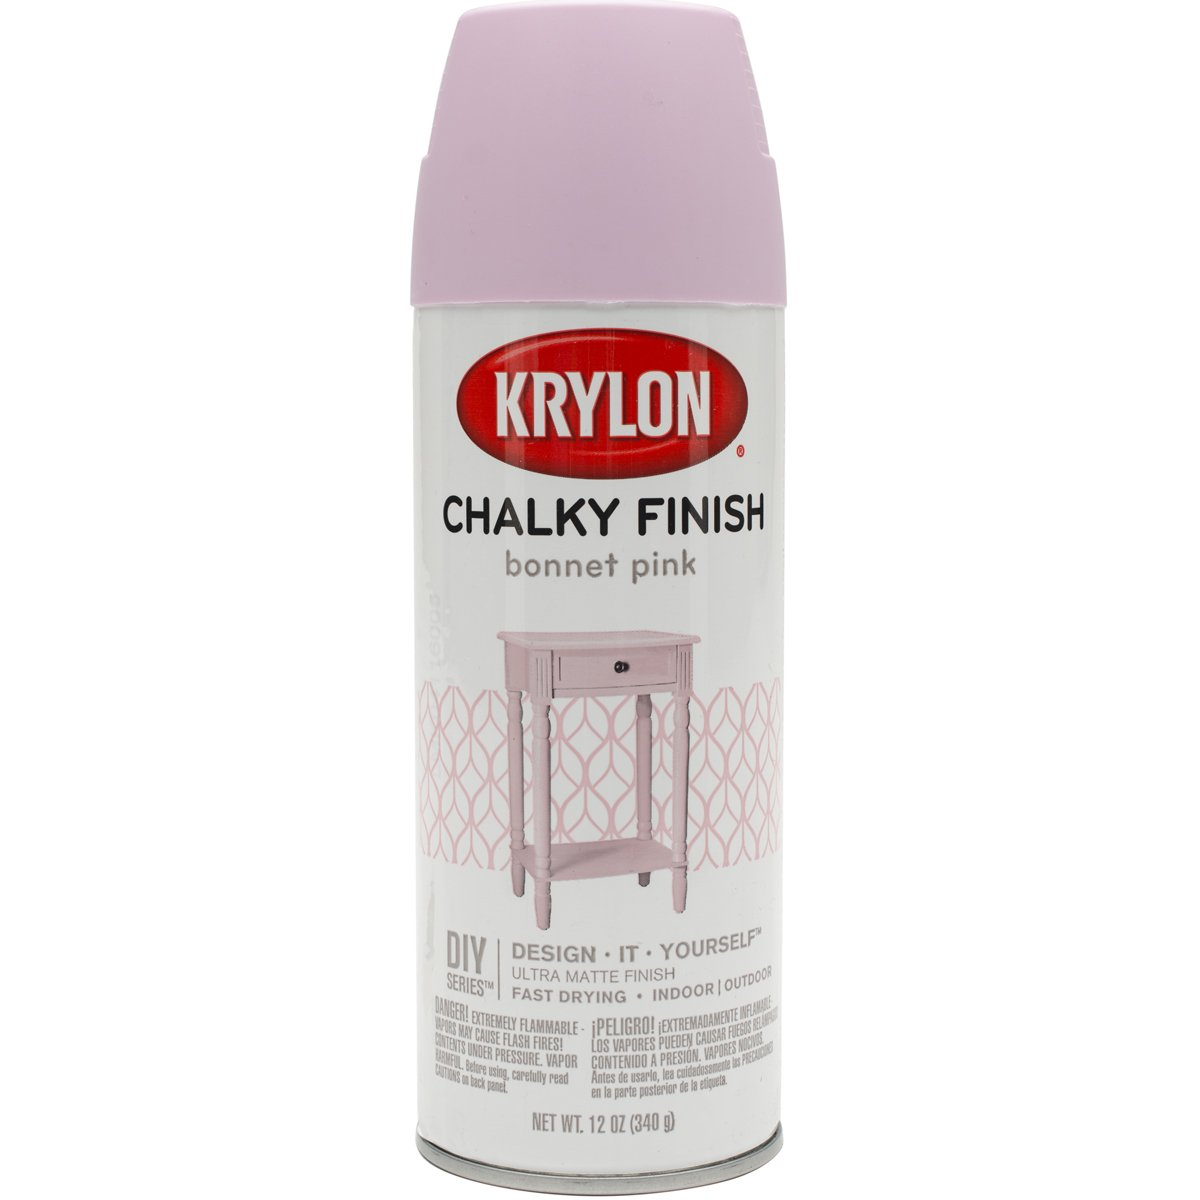 Krylon K04116007 Chalky Finish Spray Paint, Bonnet Pink, 12 Ounce